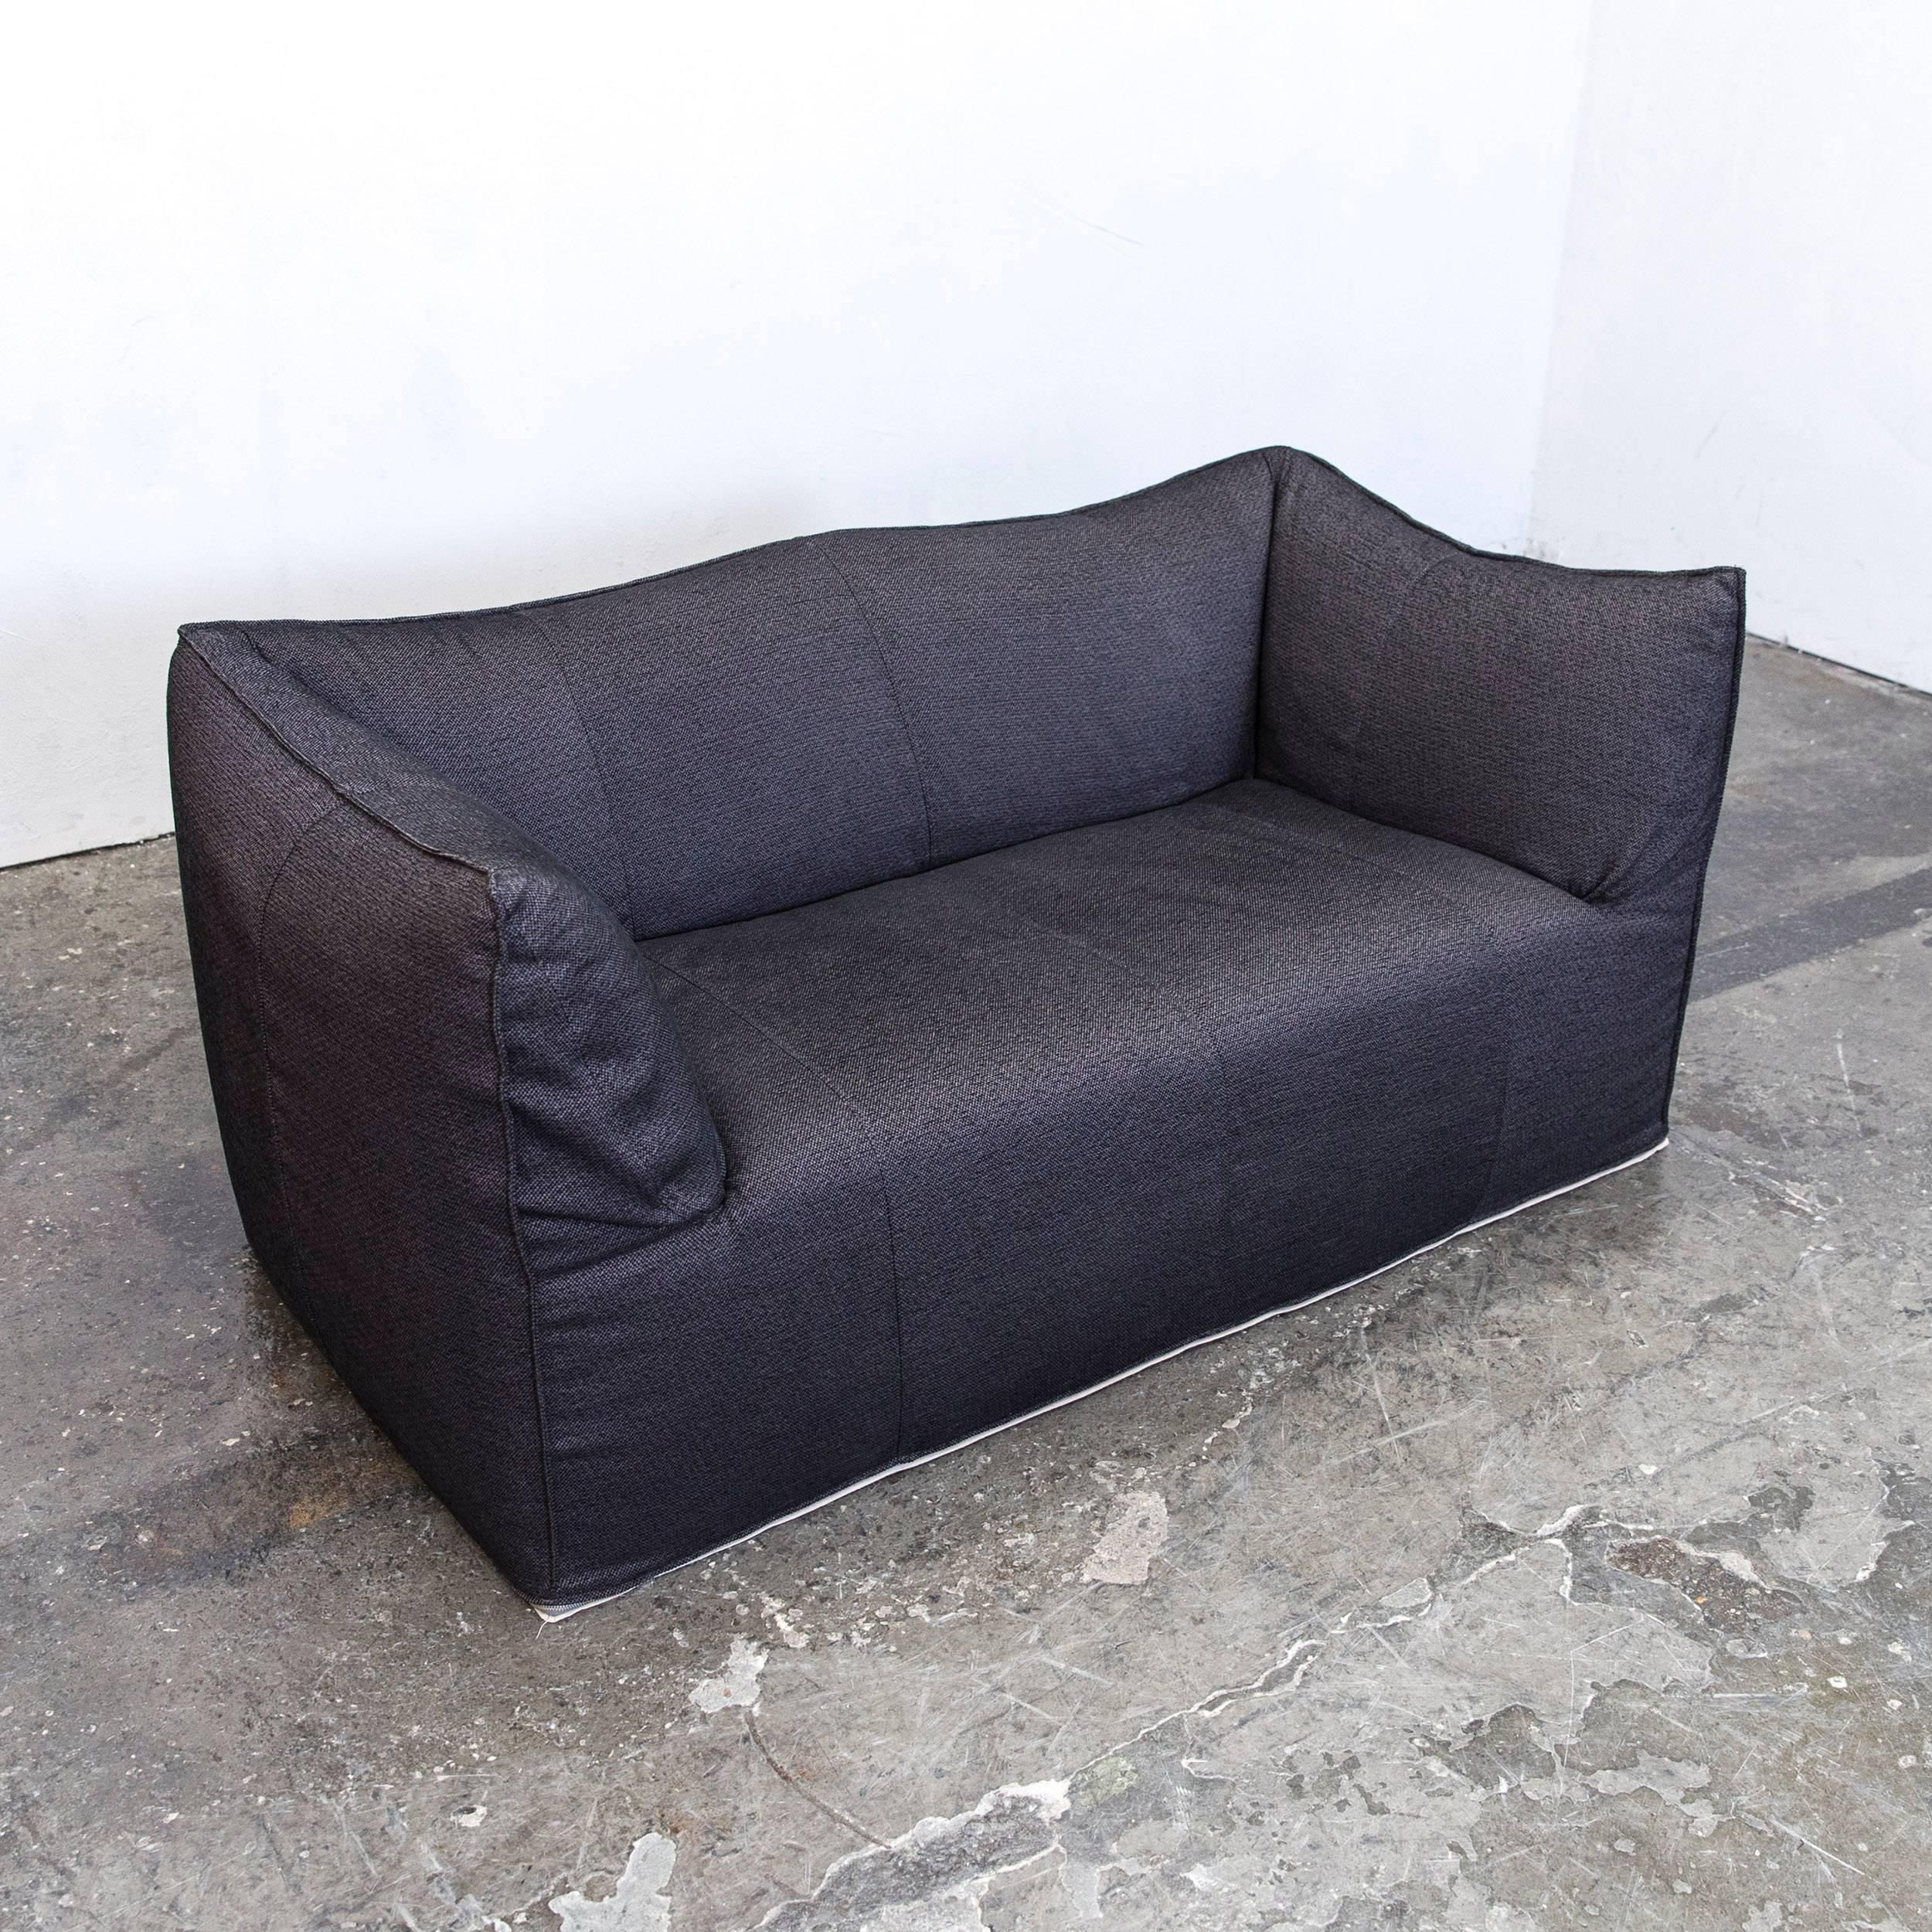 zweisitzer couch laauser designer sofa black leather twoseat couch function modern at stdibs. Black Bedroom Furniture Sets. Home Design Ideas